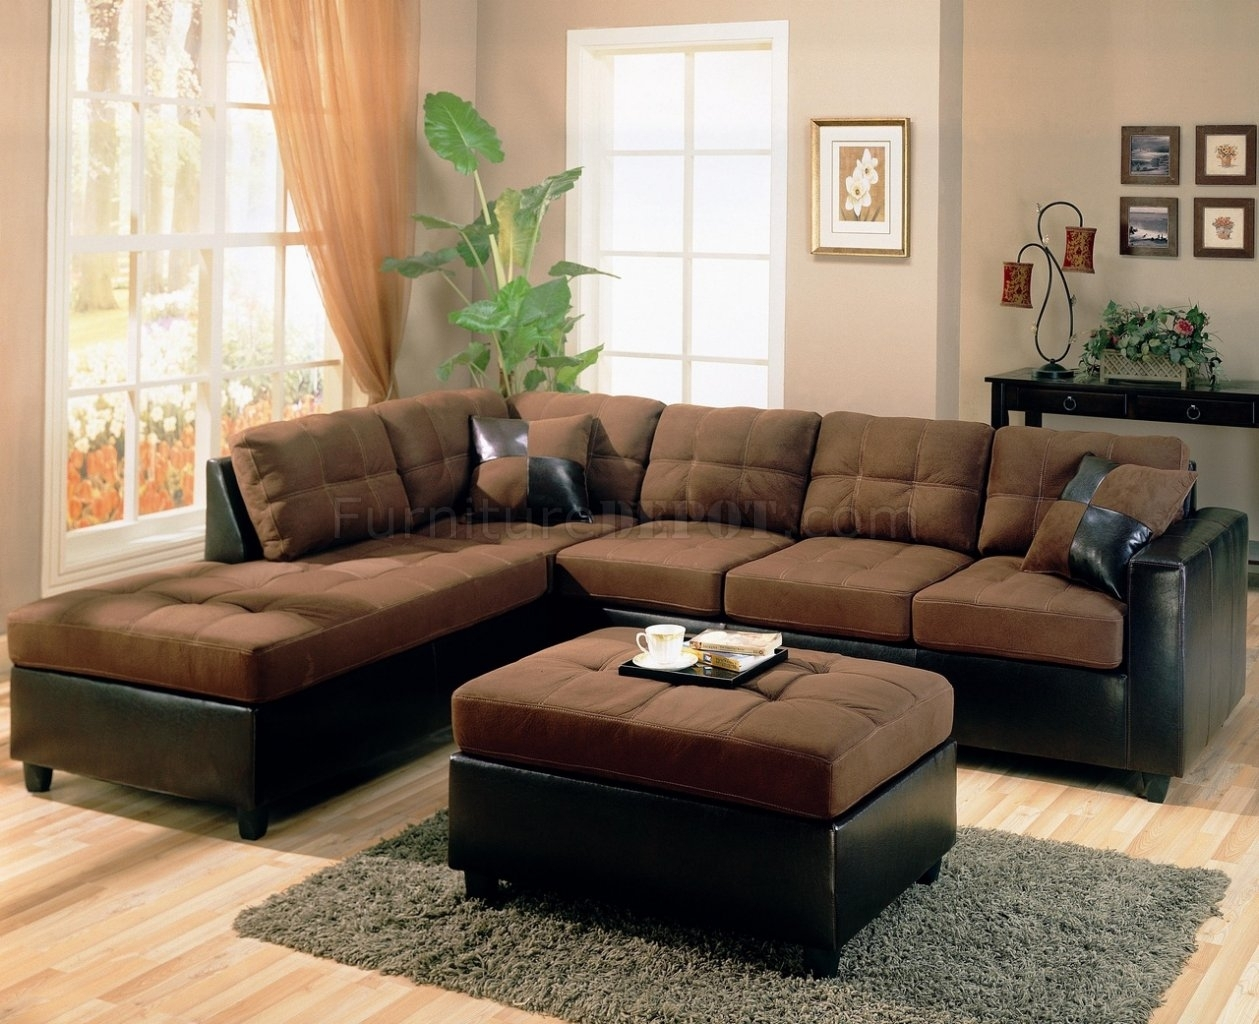 Attractive Chocolate Brown Sectional Sofas 24 In Jennifer Sofas And Inside Chocolate Brown Sectional Sofas (View 1 of 10)